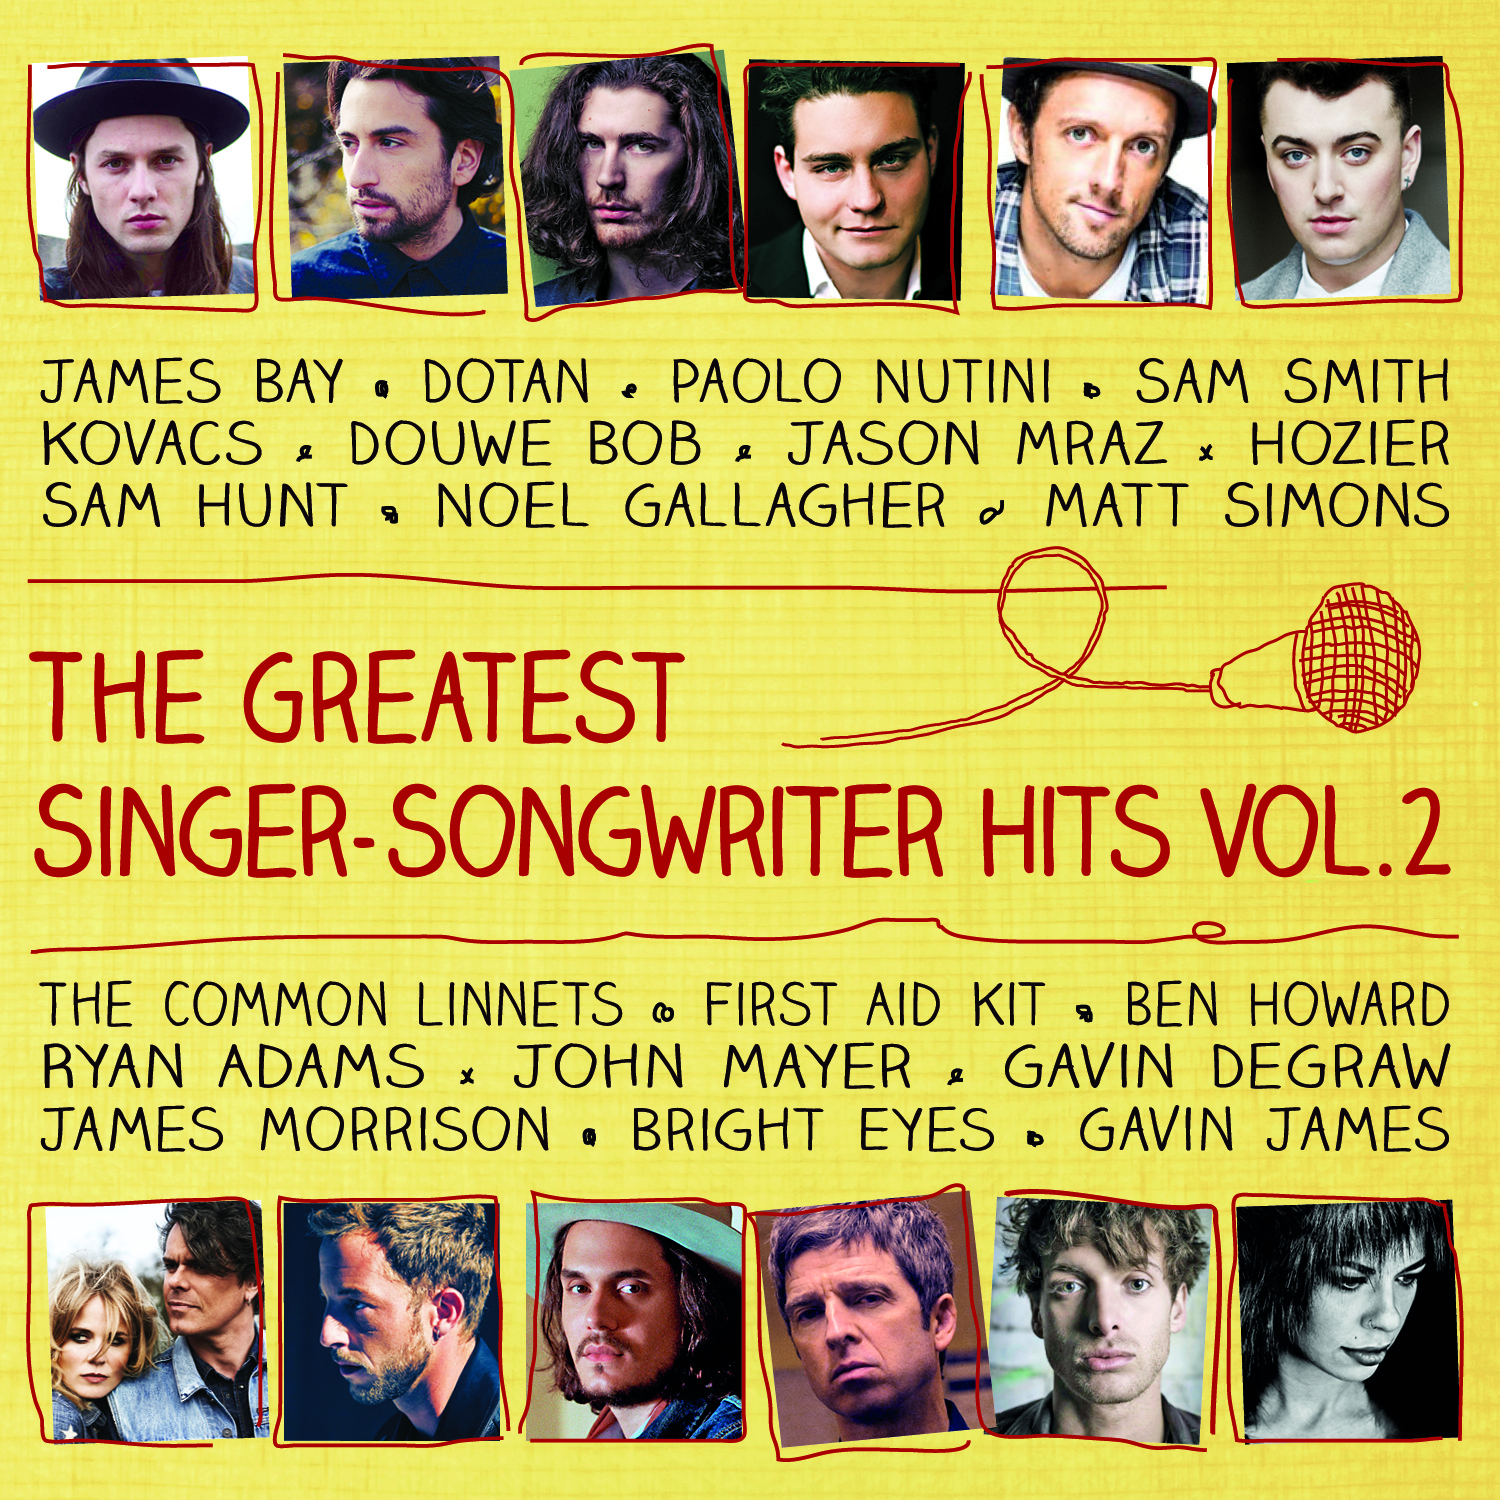 The Greatest Singer-Songwriter Hits Vol 2